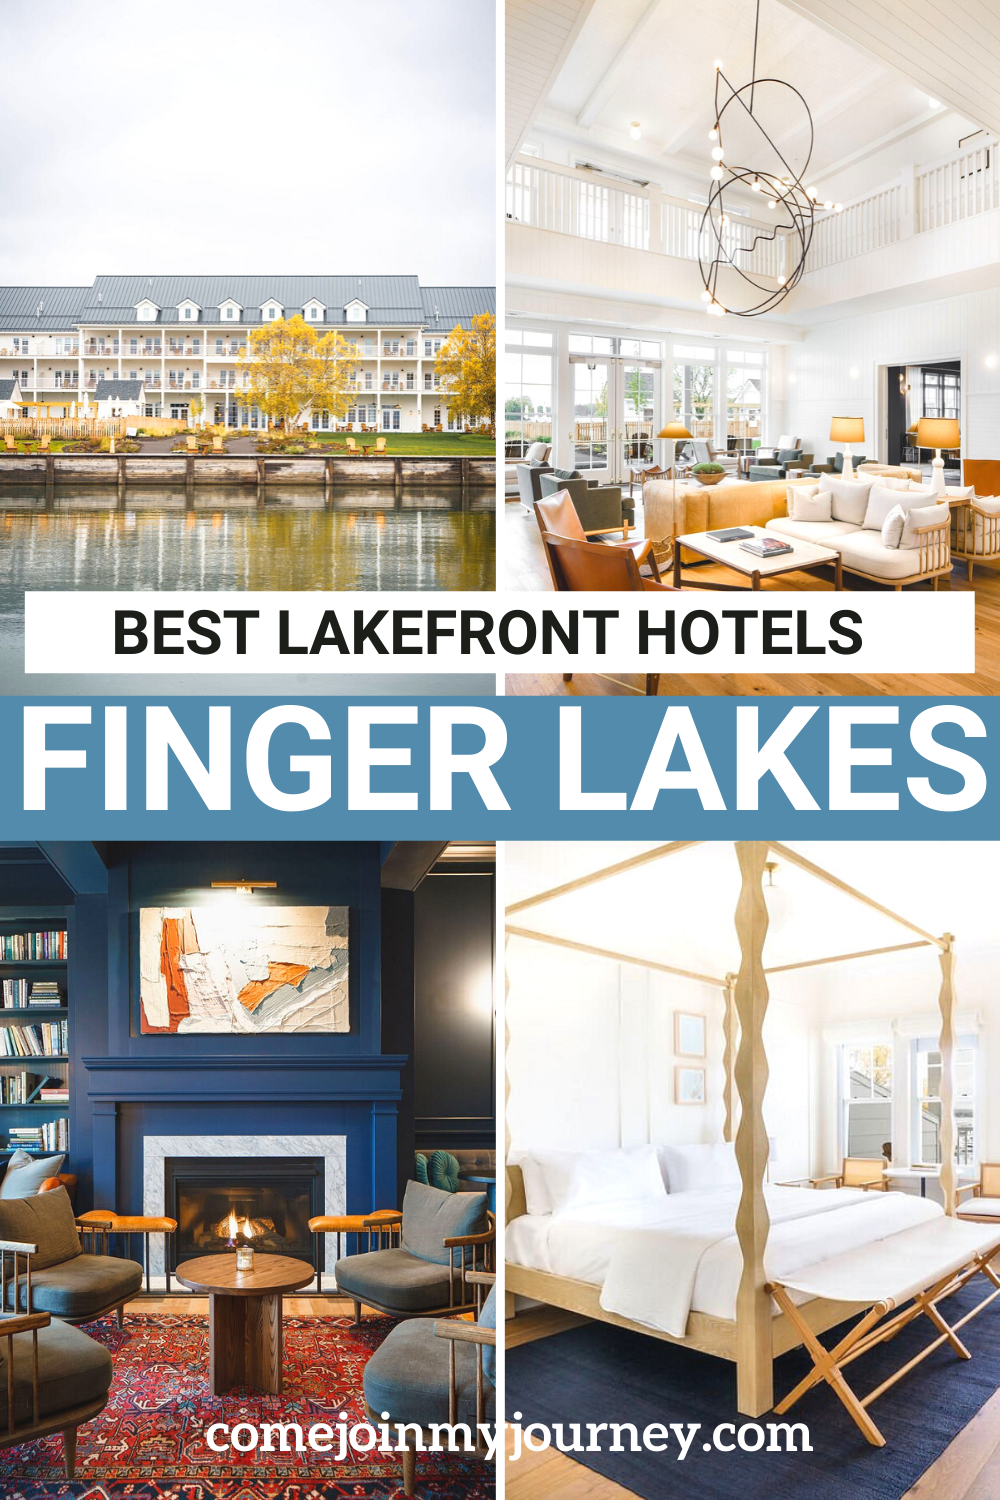 Best Lakefront Hotels in the Finger Lakes